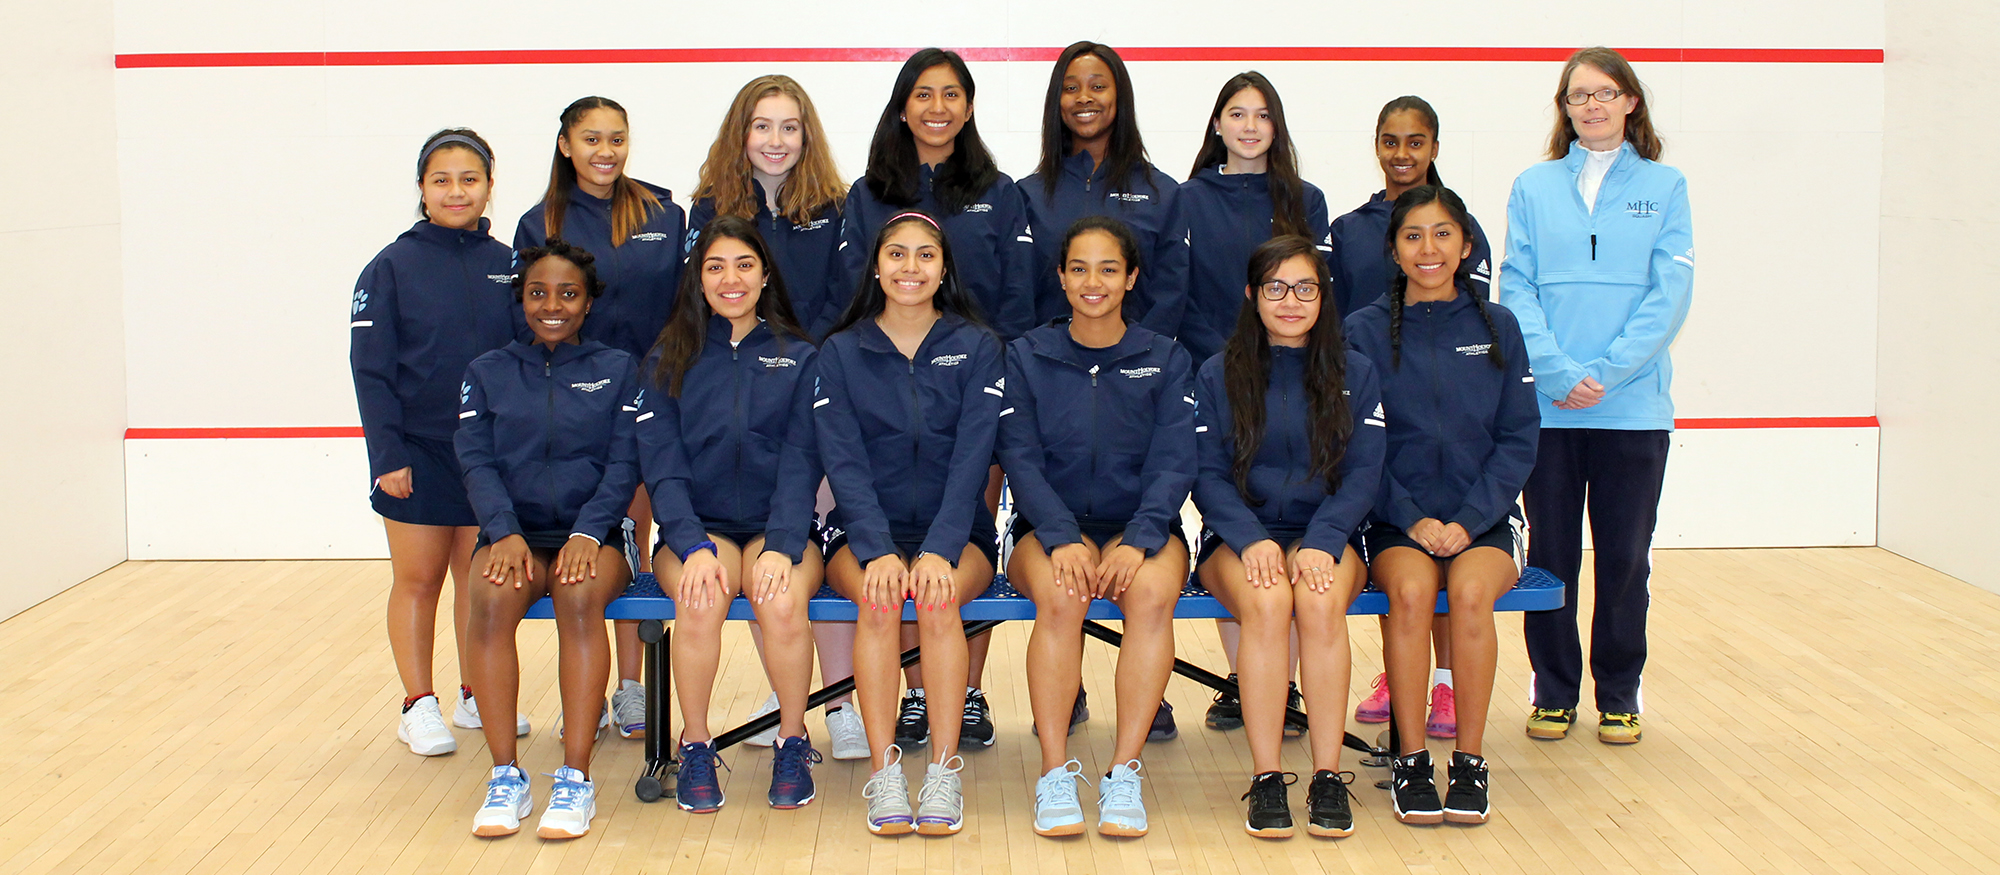 Group photo of the 2018-19 Lyons squash team.